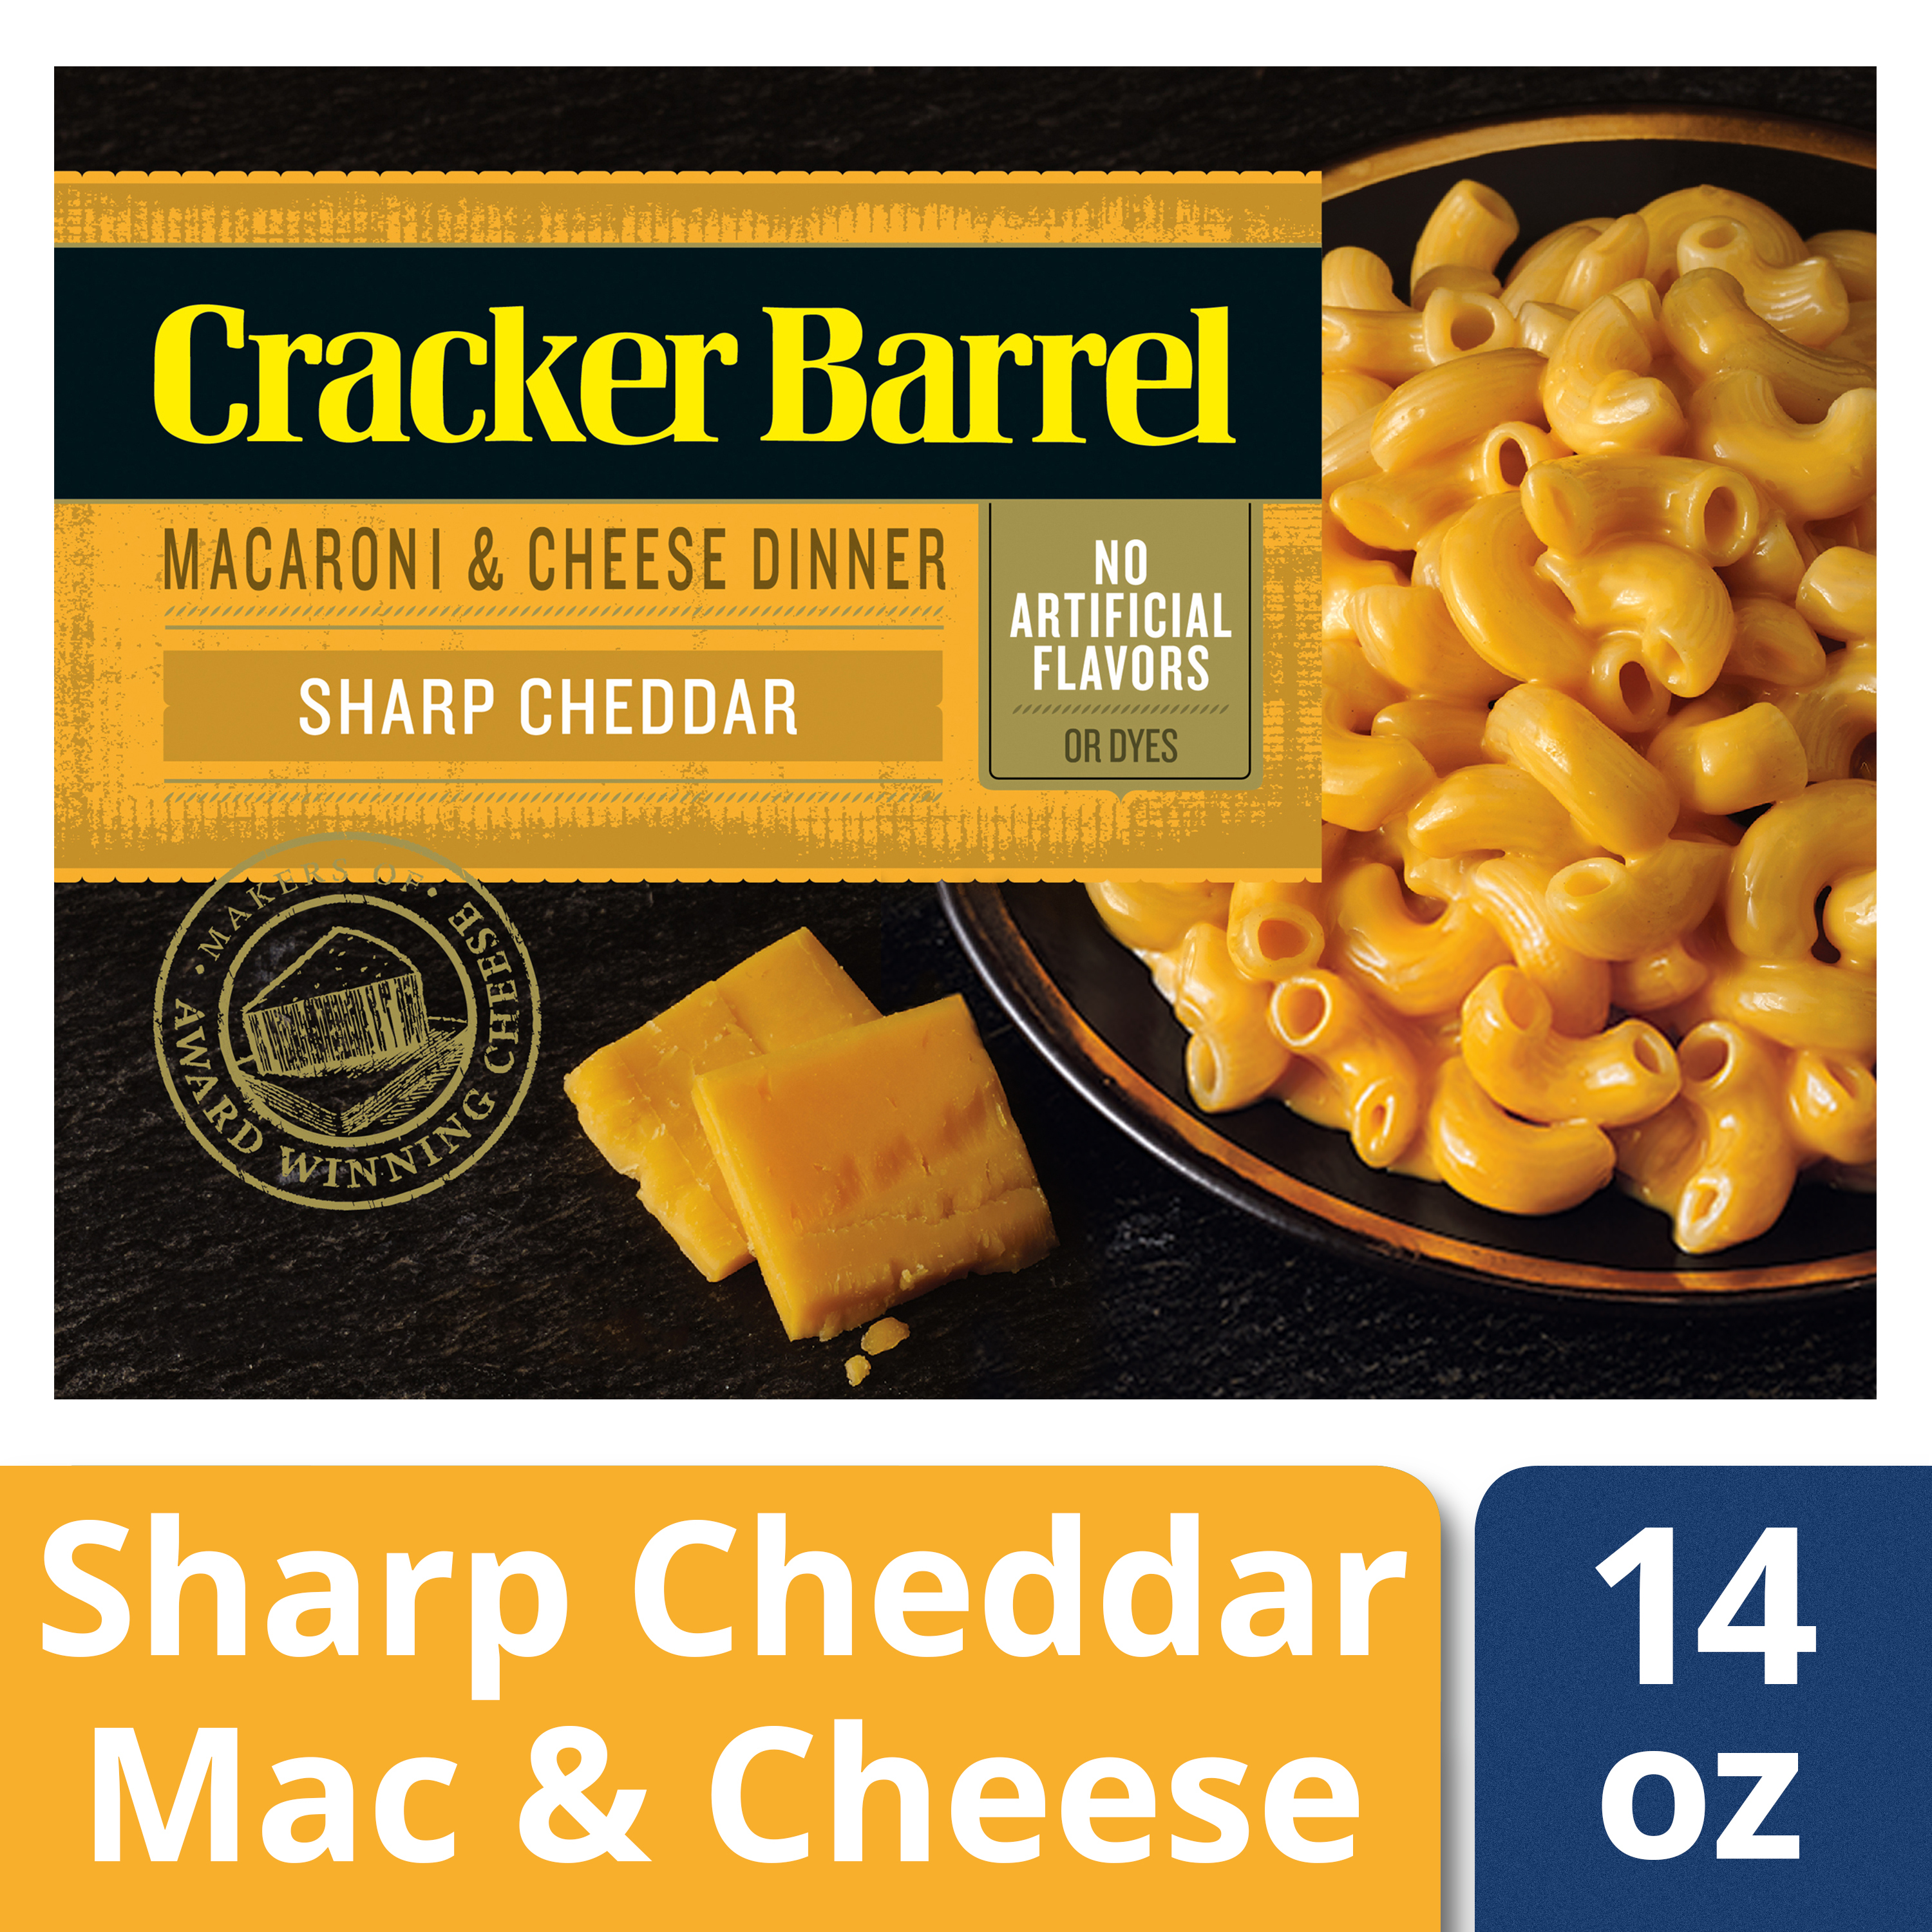 Cracker Barrel Macaroni & Cheese Dinner Sharp Cheddar 14 oz Box